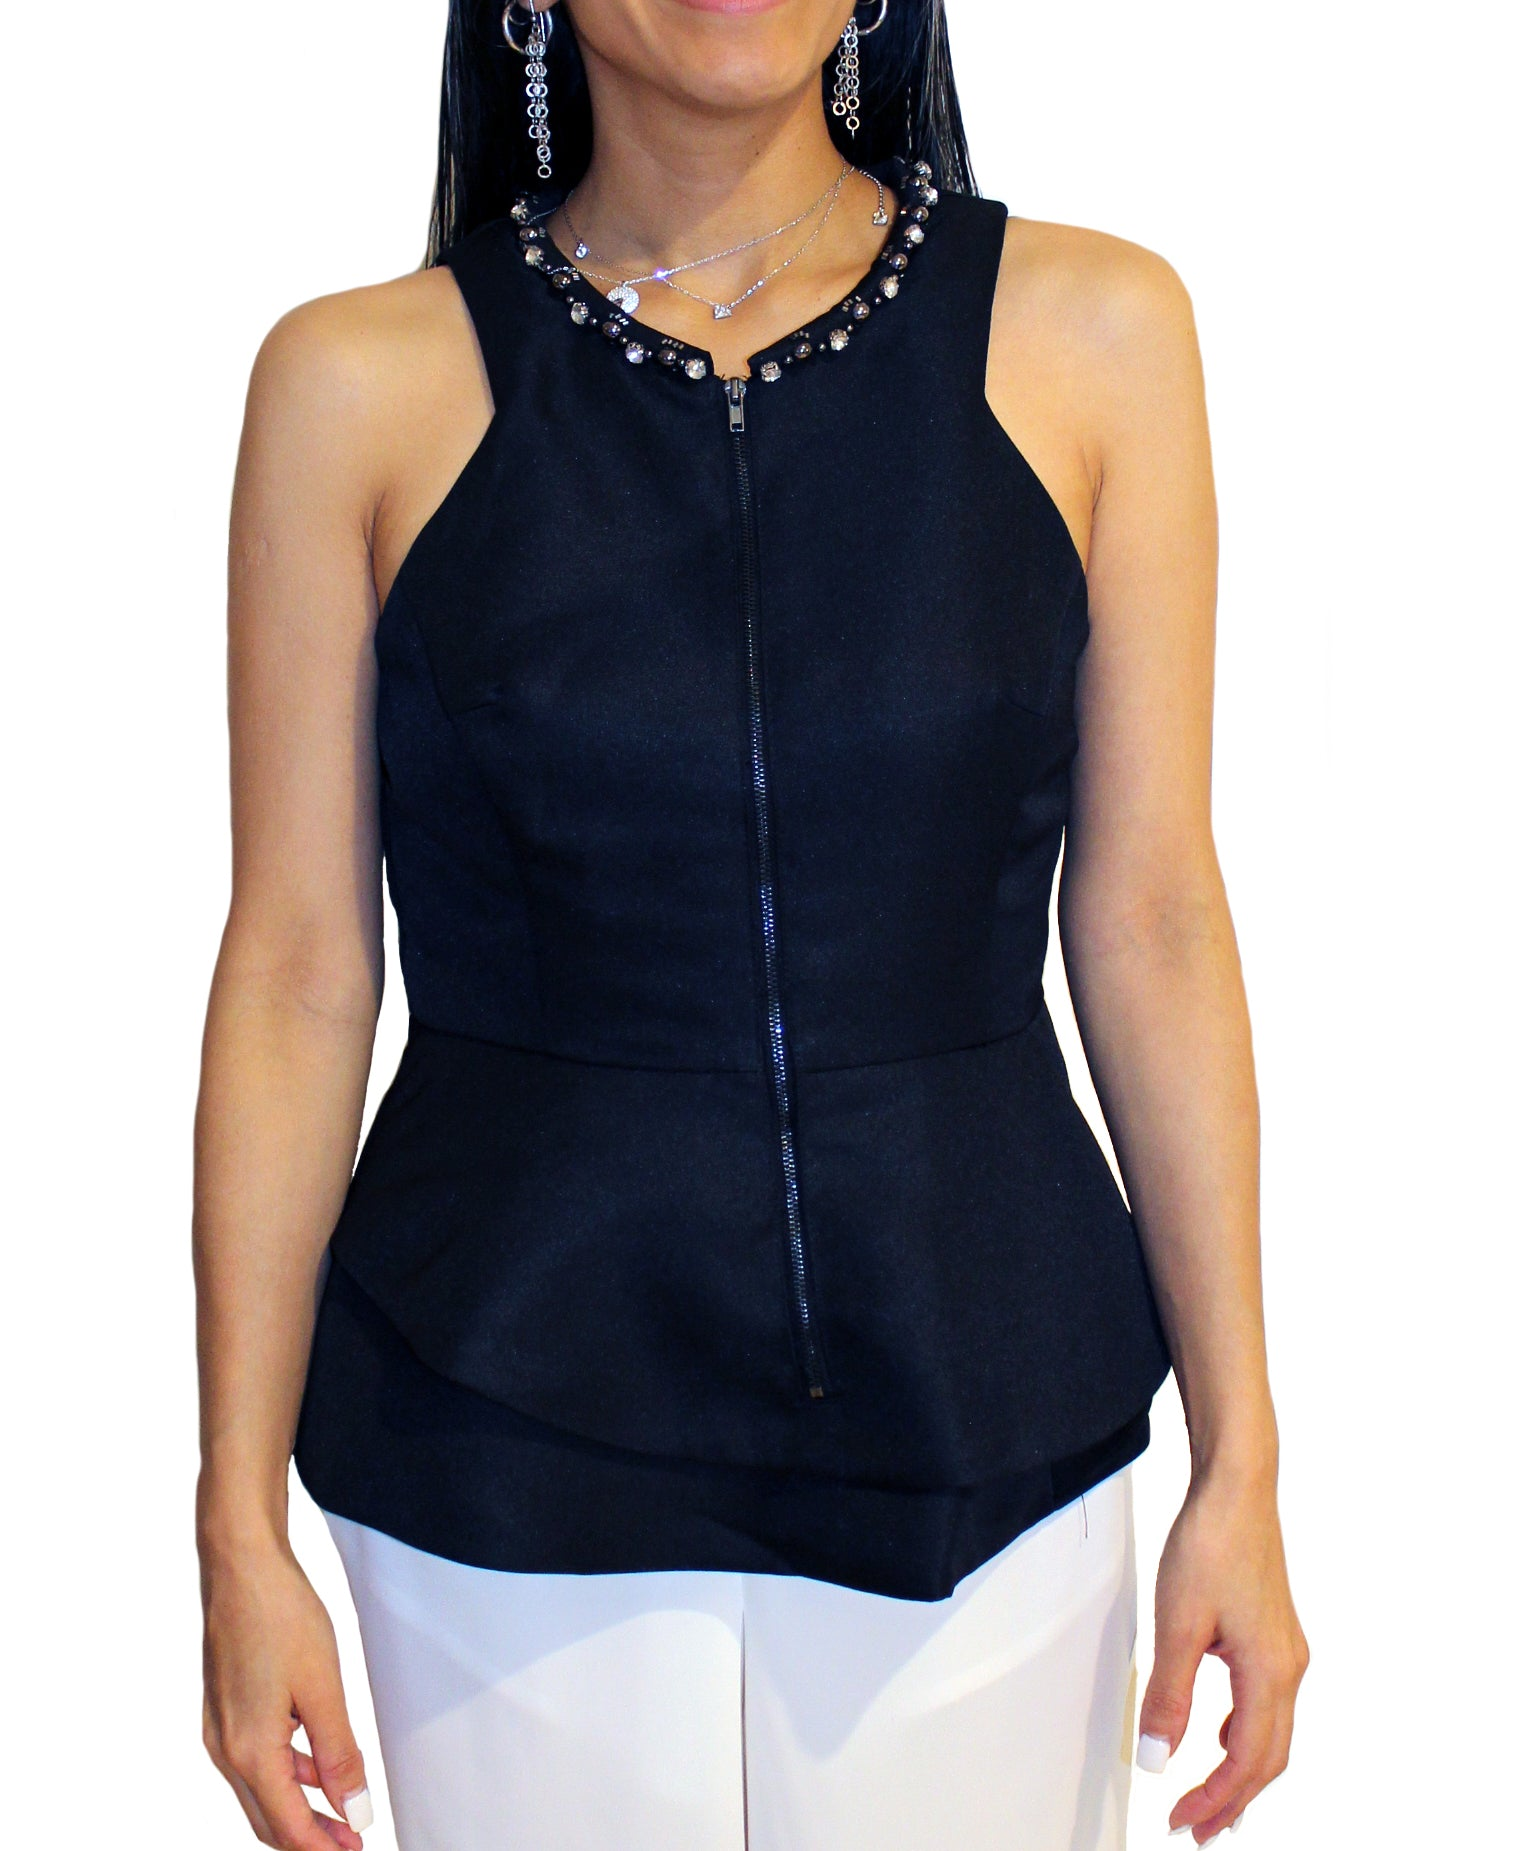 Mustard Seed - Sleeveless Top with Beaded Neck Design in Black